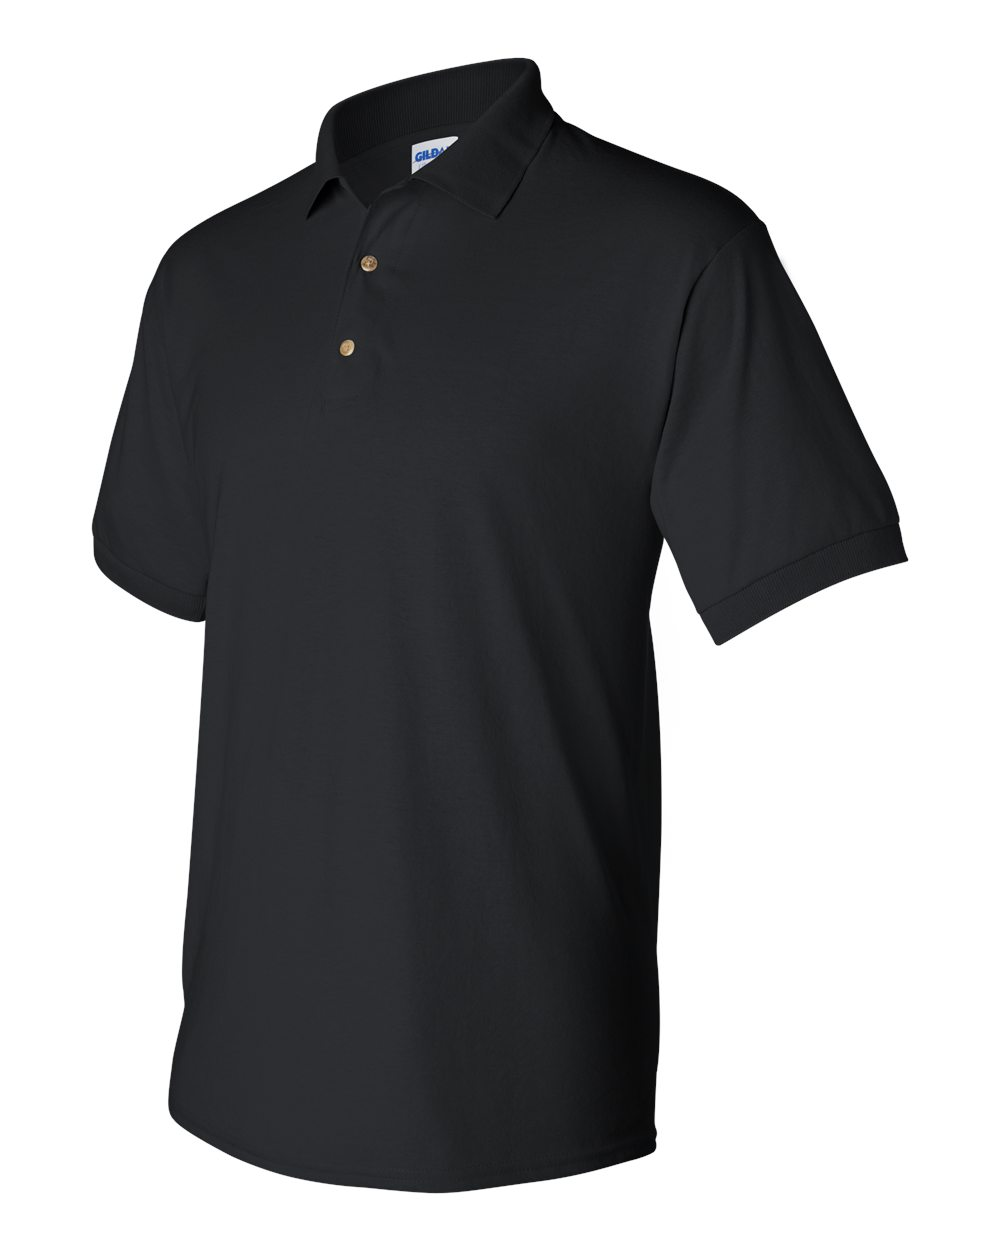 North Central Black Polo